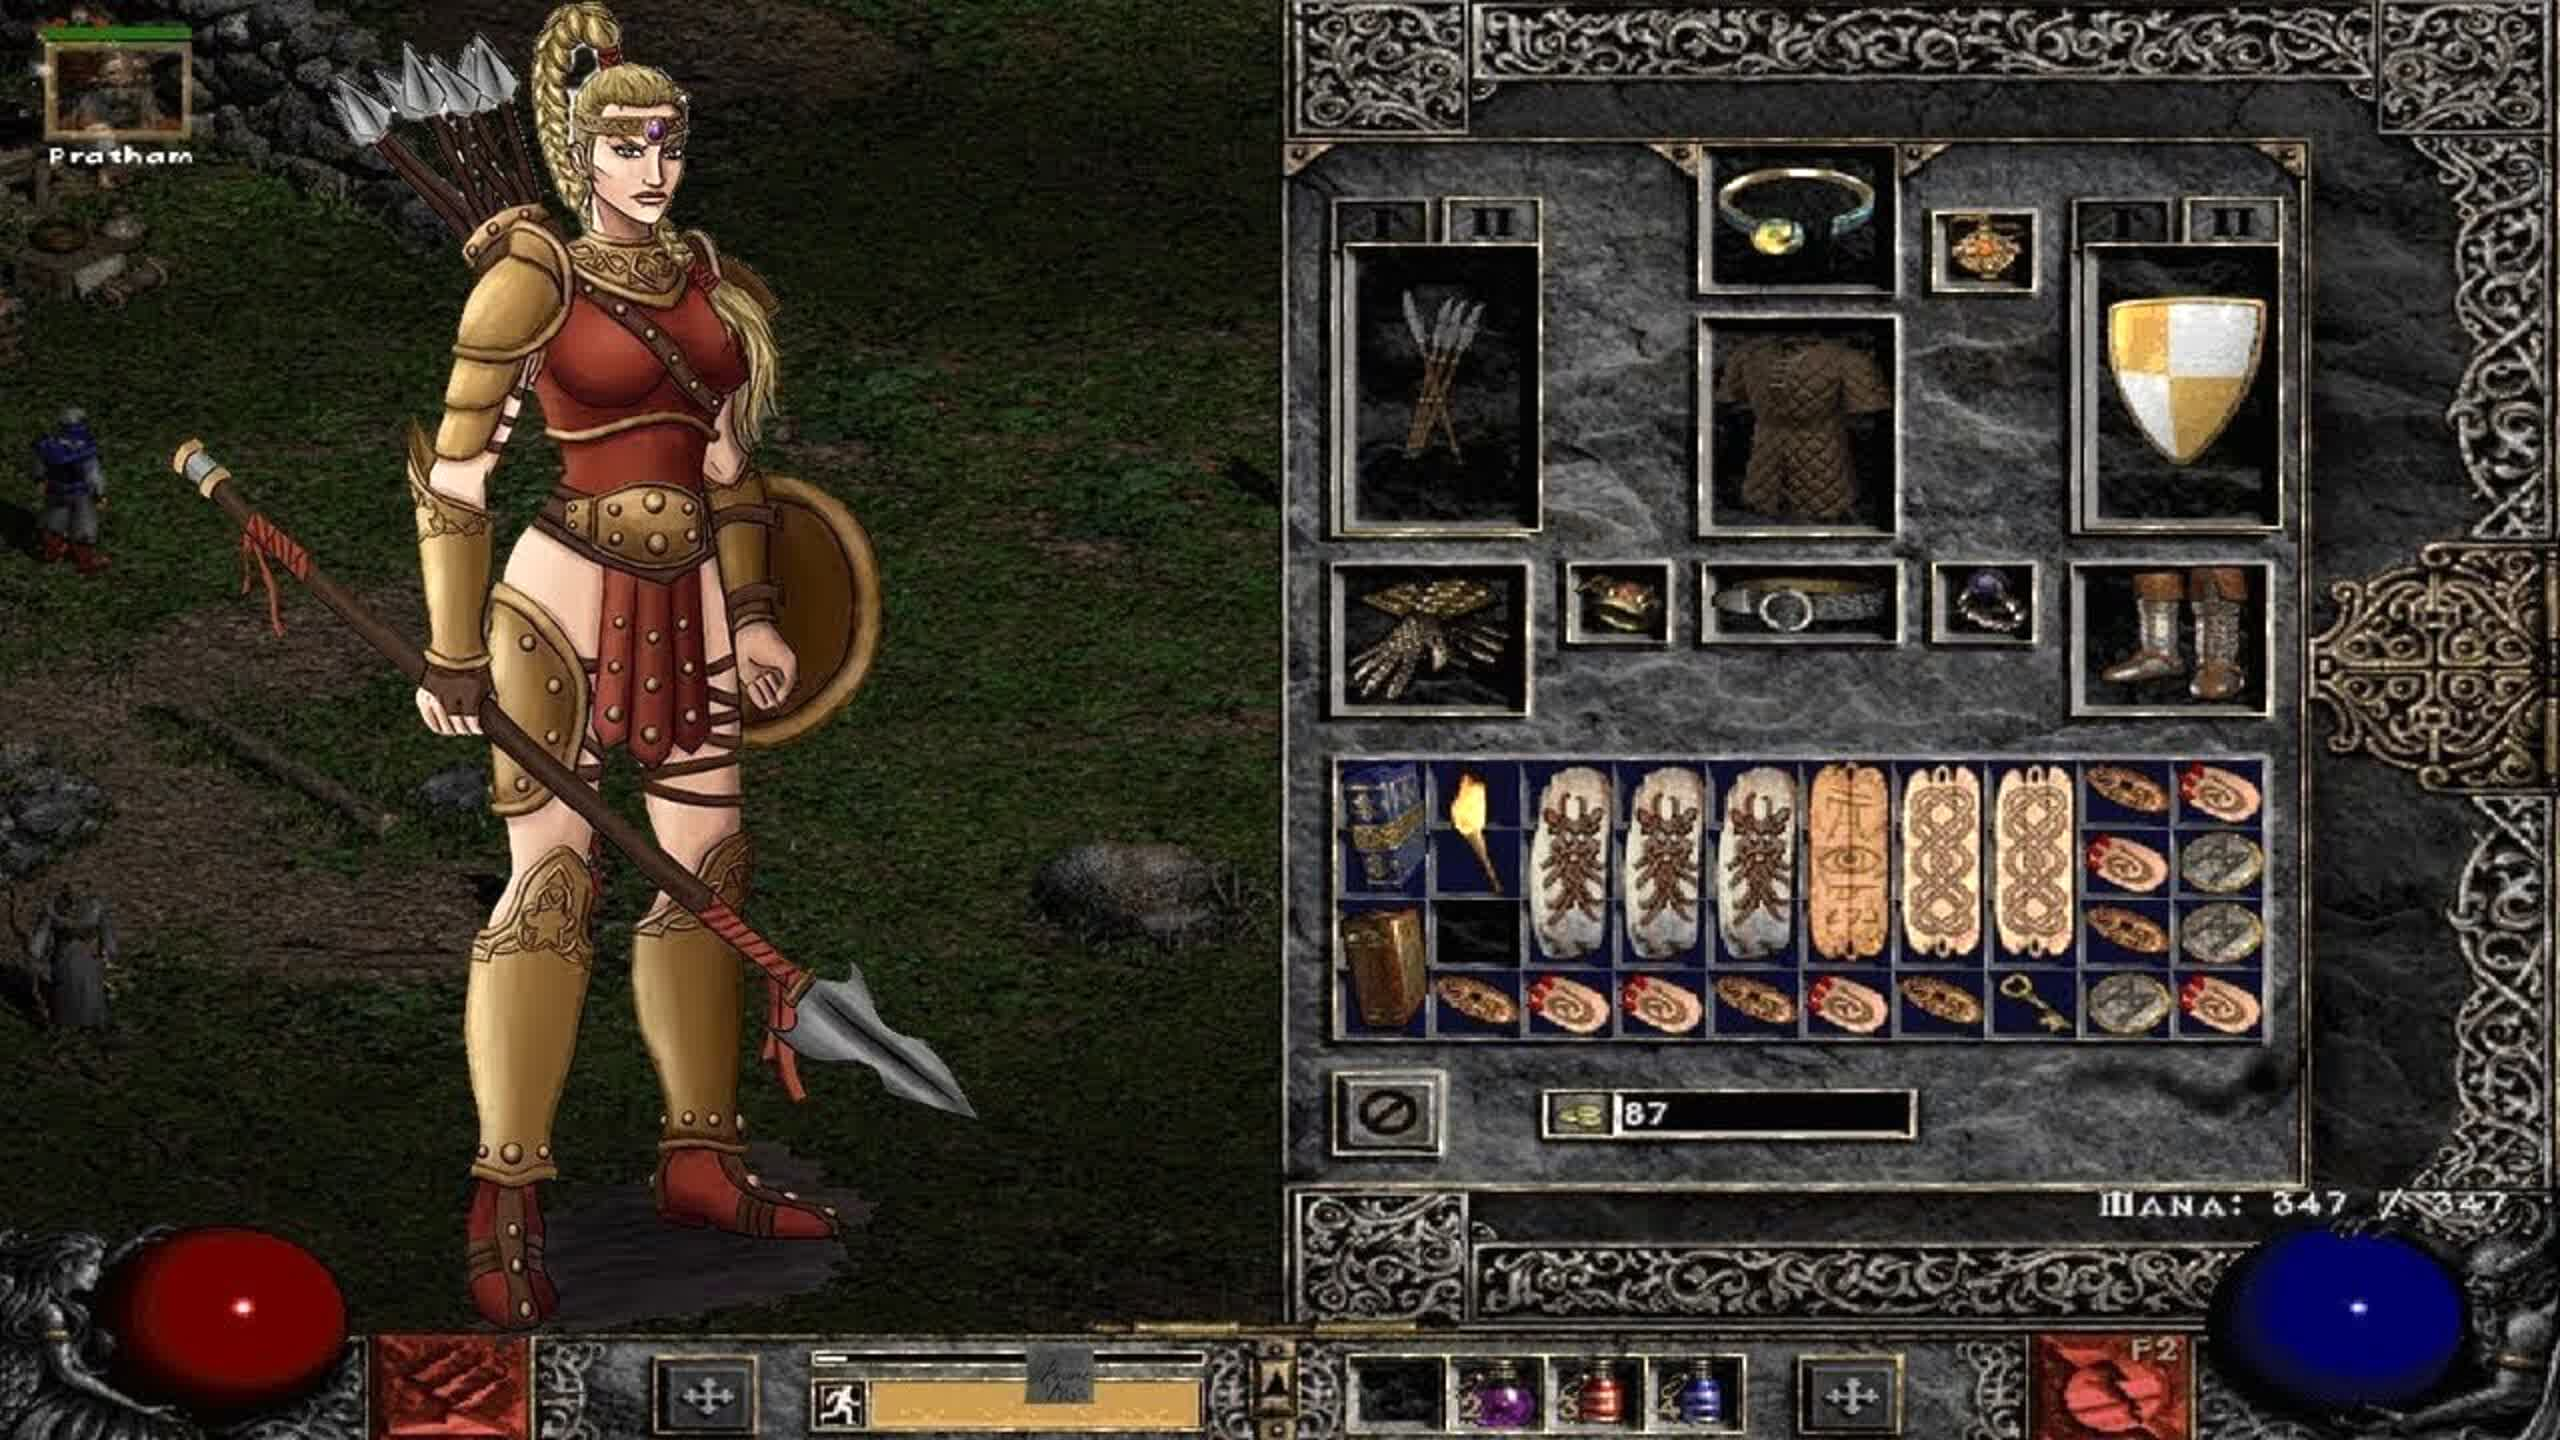 Diablo II: Resurrected will let you load the original game's save files